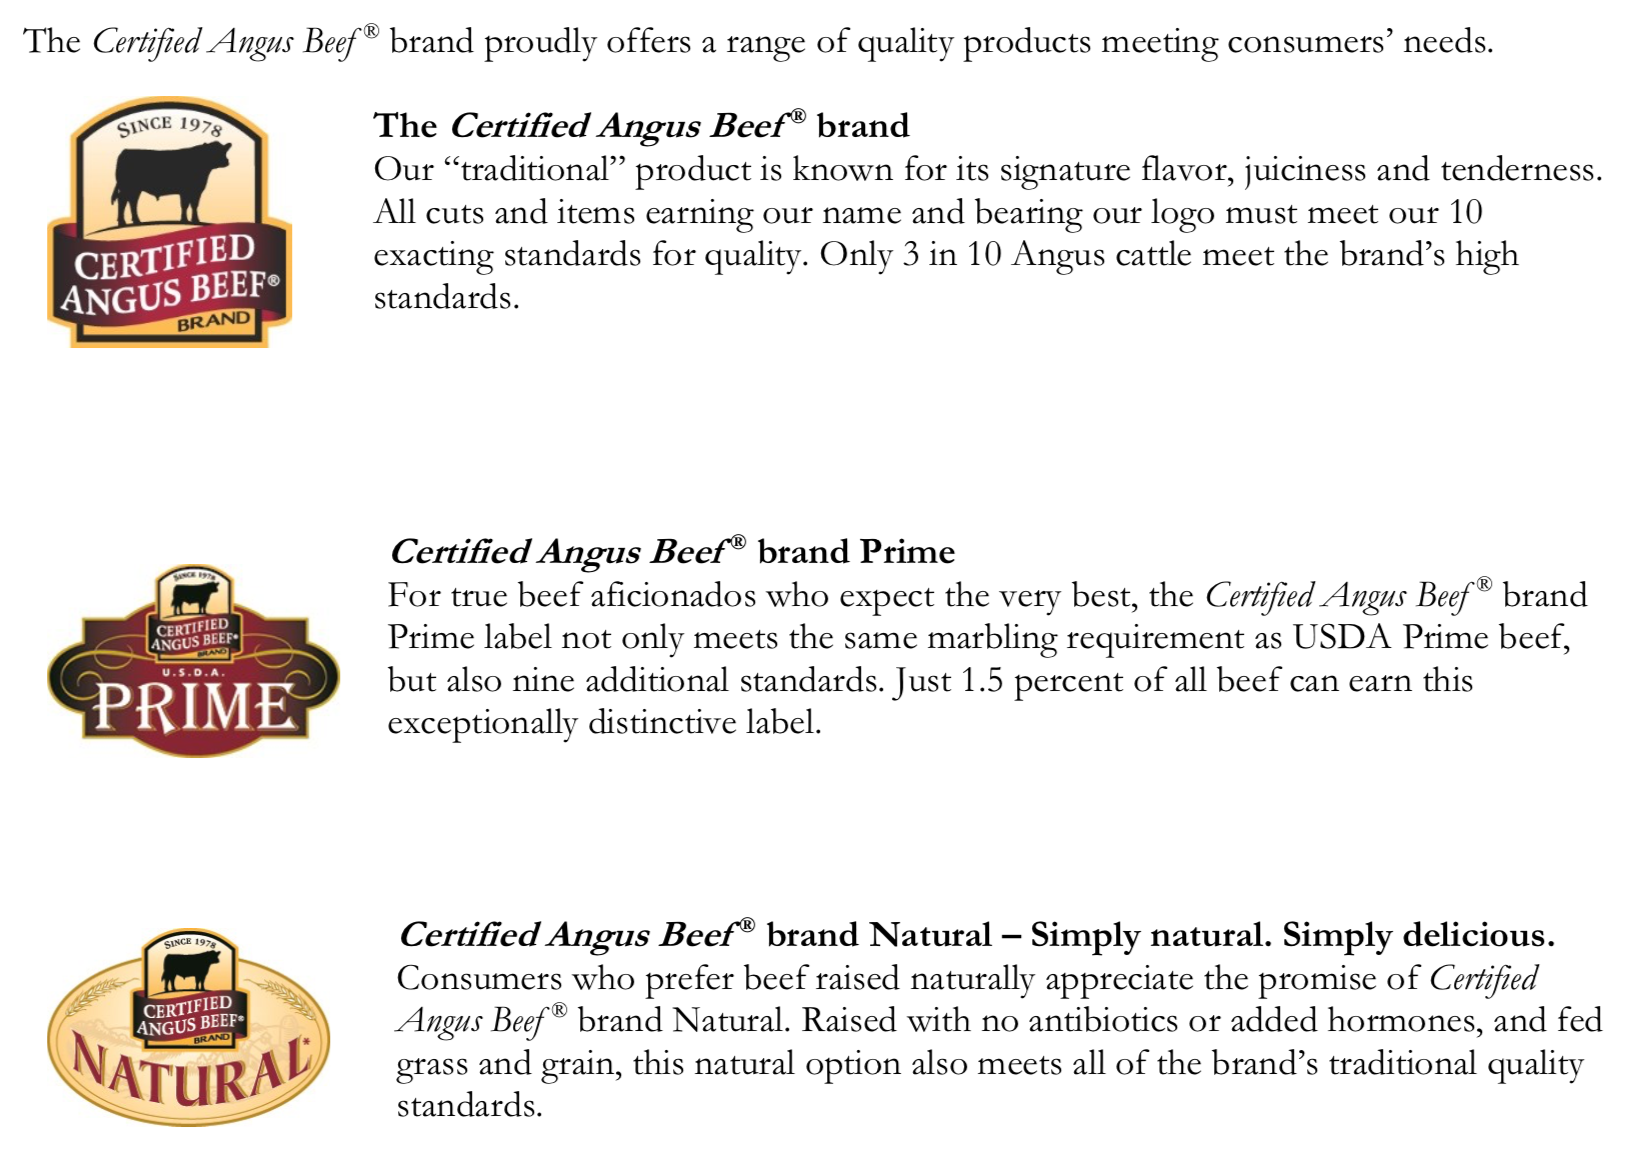 Certified Angus Beef® offers a range of quality products meeting consumers' needs. Learn more about them on Embellishmints.com